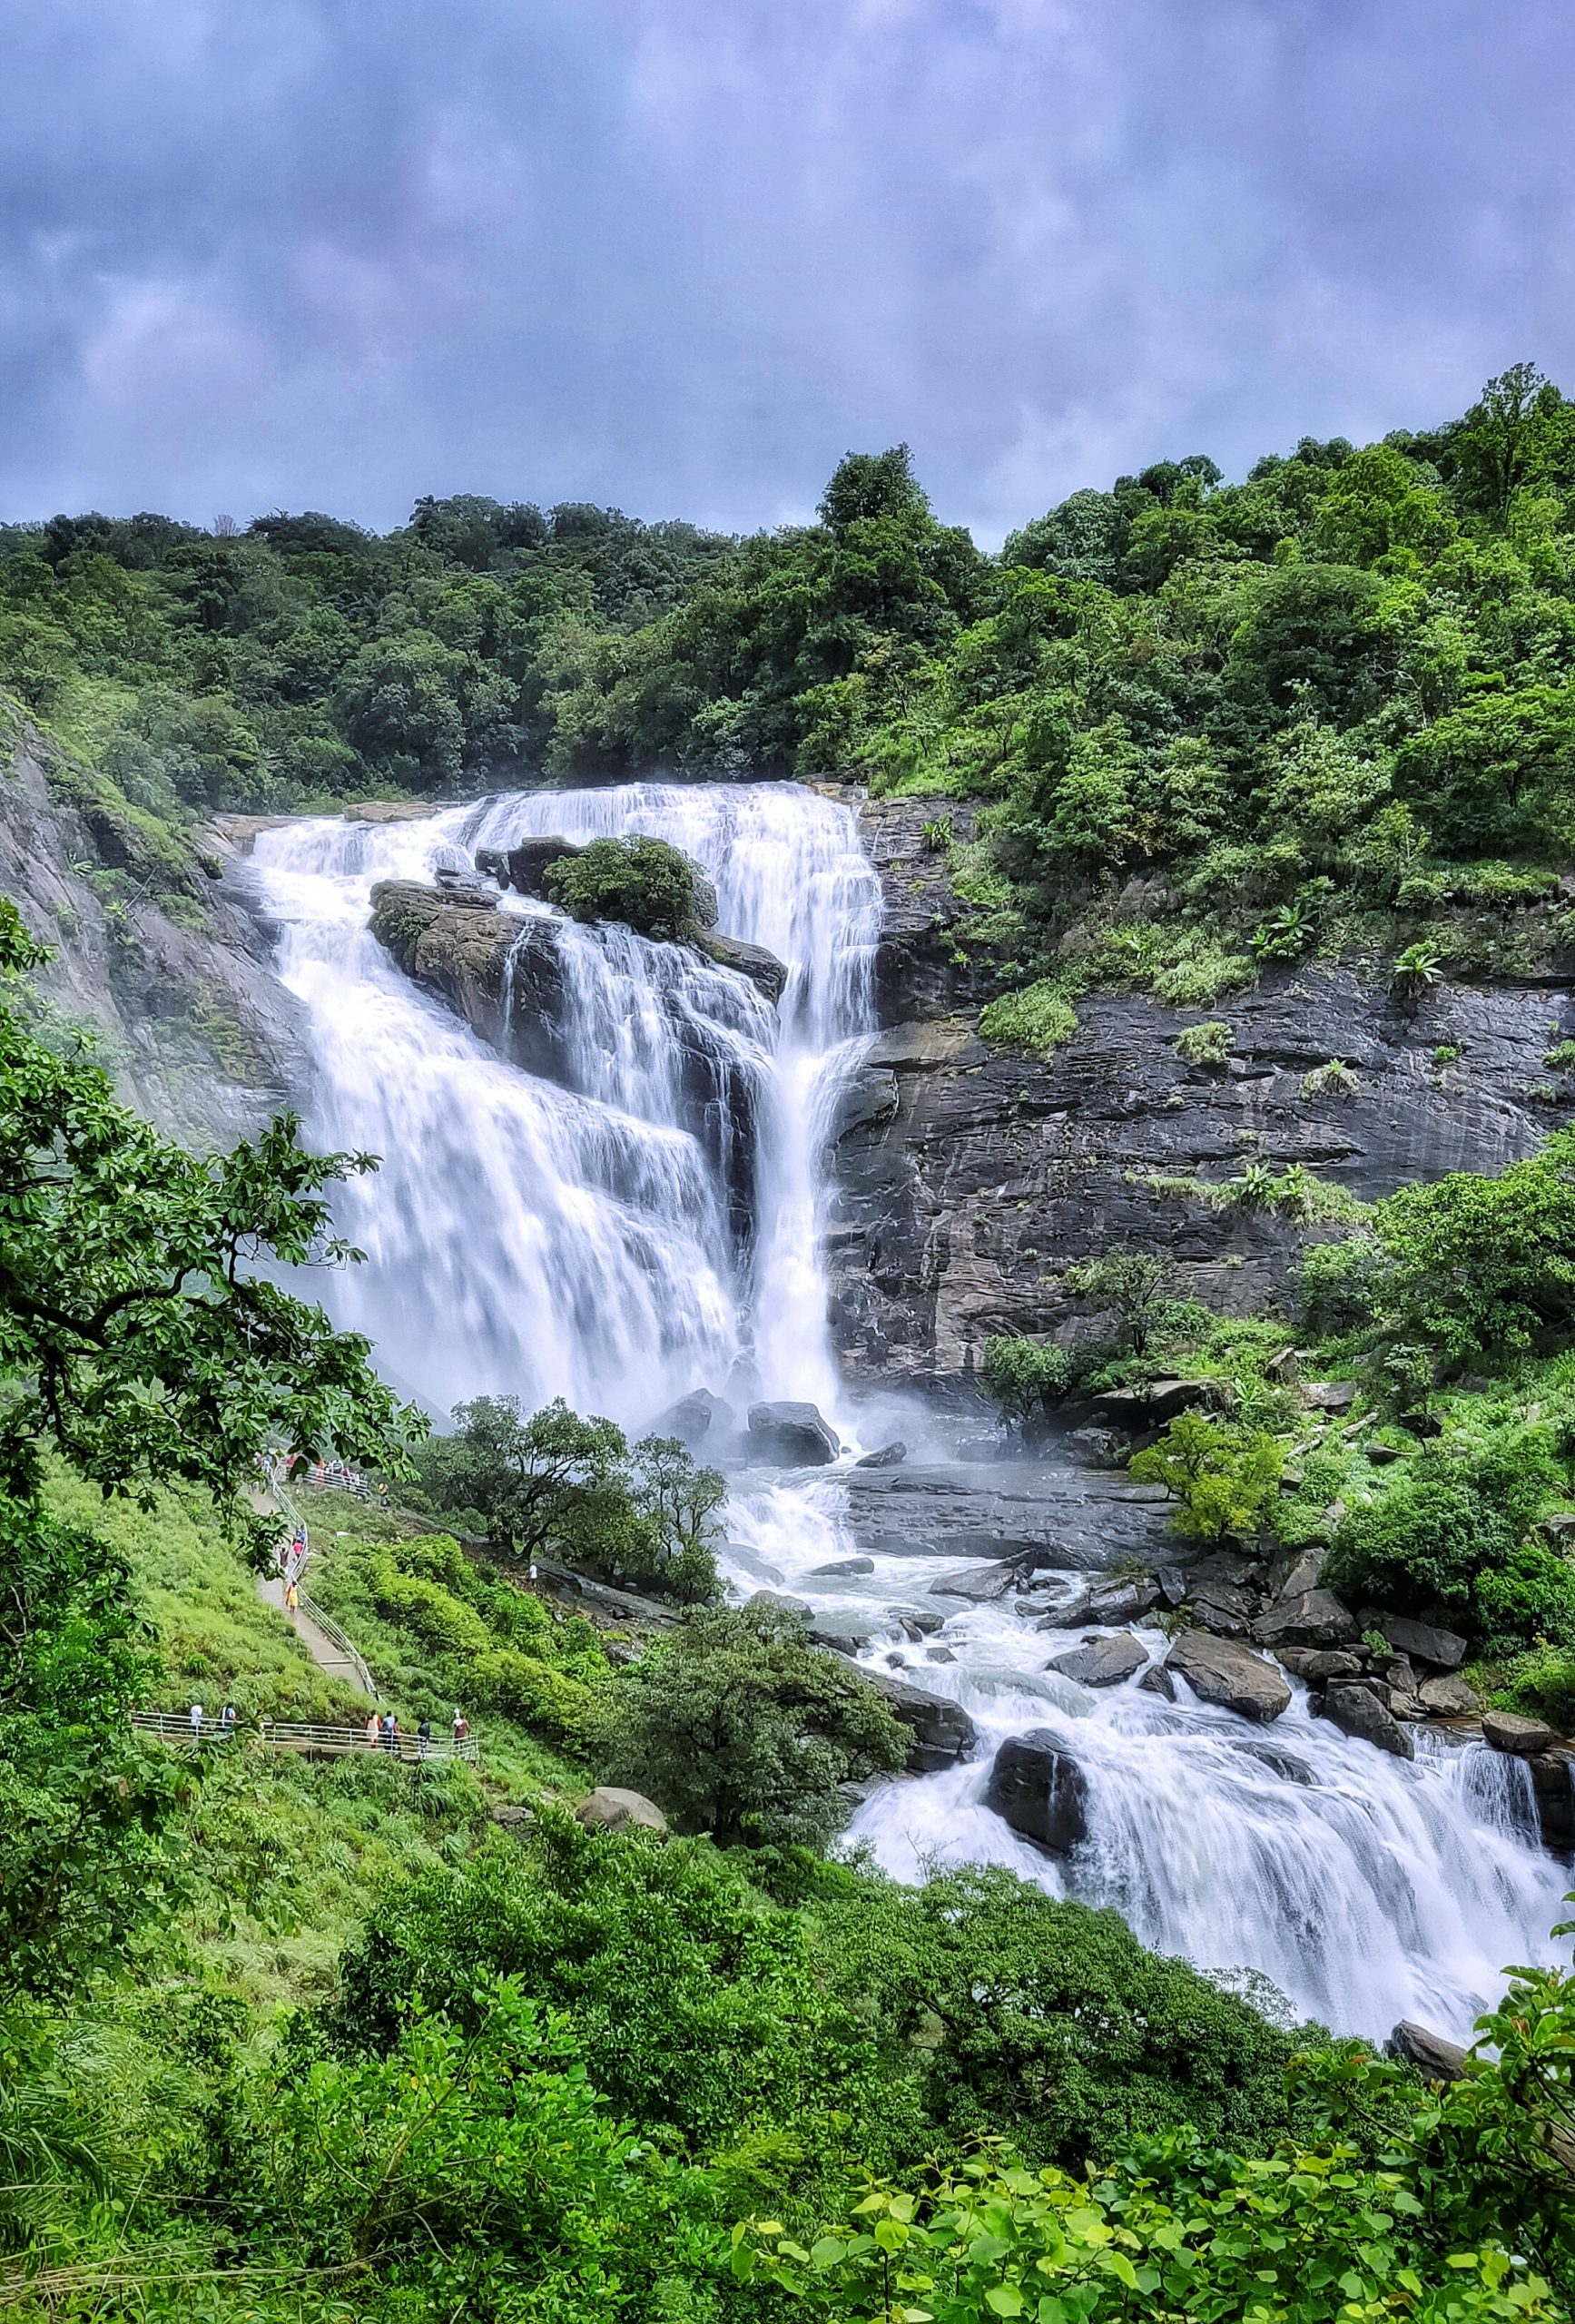 A beautiful view of a waterfall